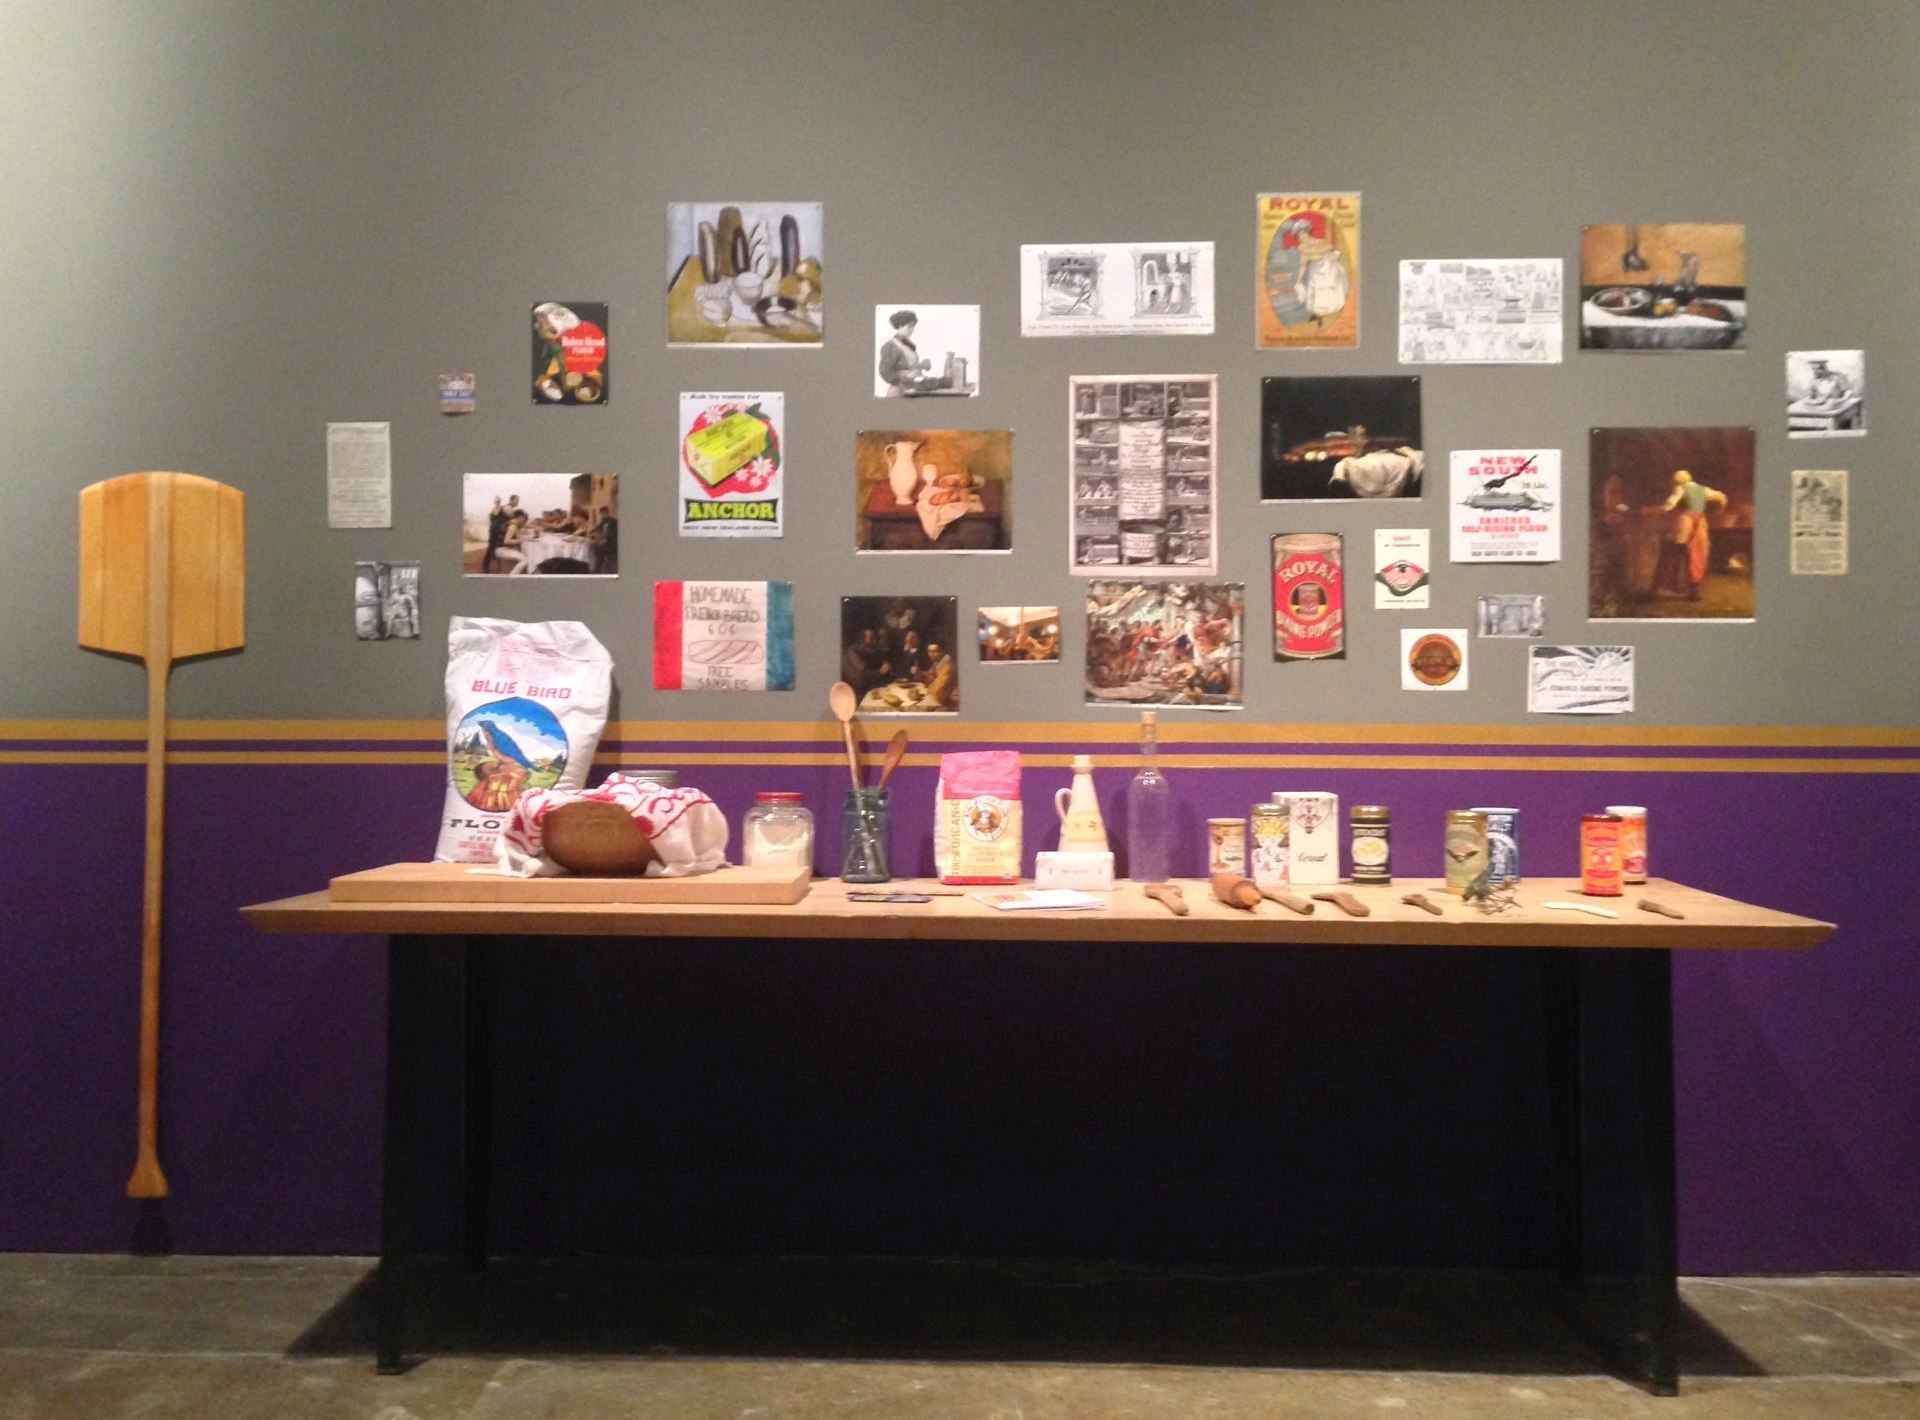 The Royal Breadshow bakers table